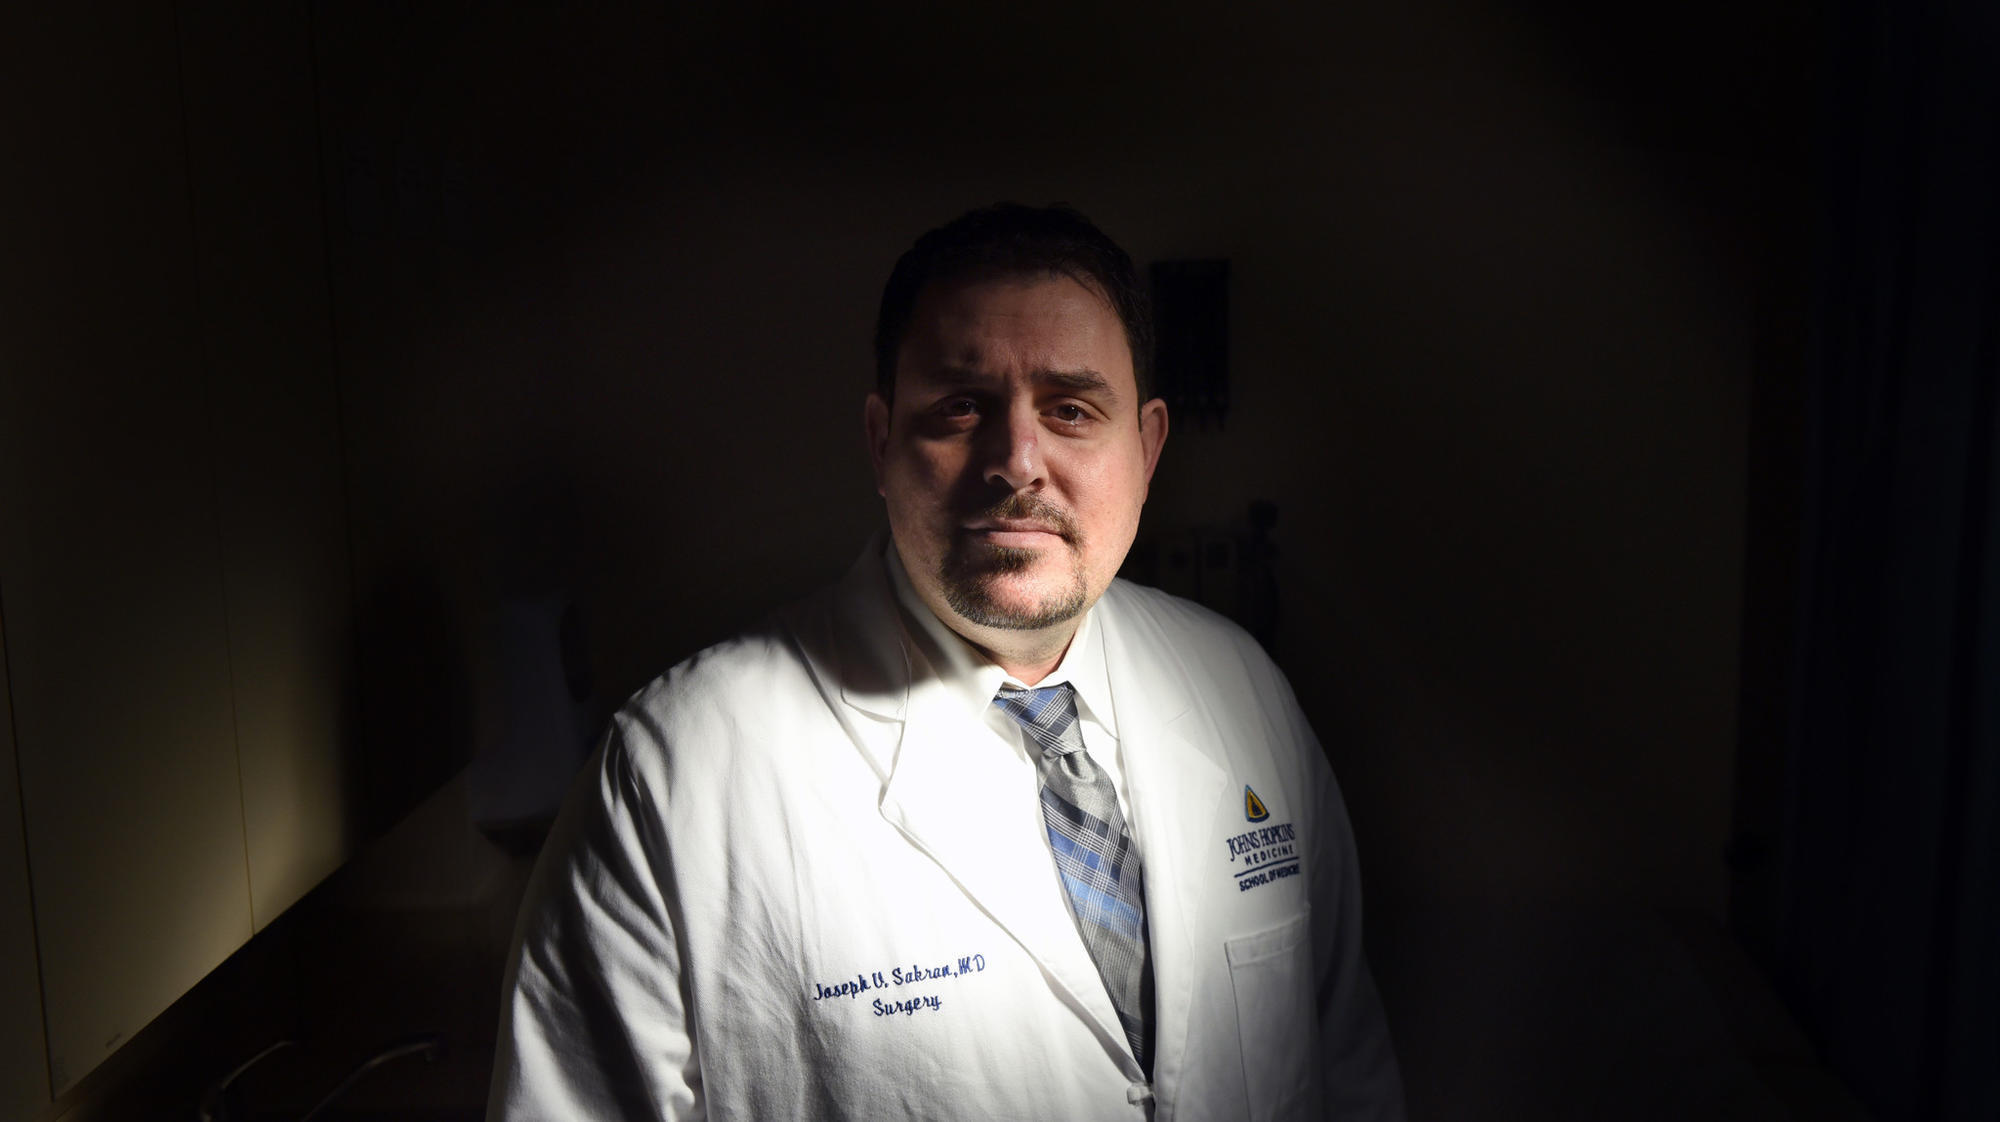 baltimoresun.com - Lillian Reed - This is our lane: Baltimore surgeon pushes back after NRA tweet about doctors and gun control